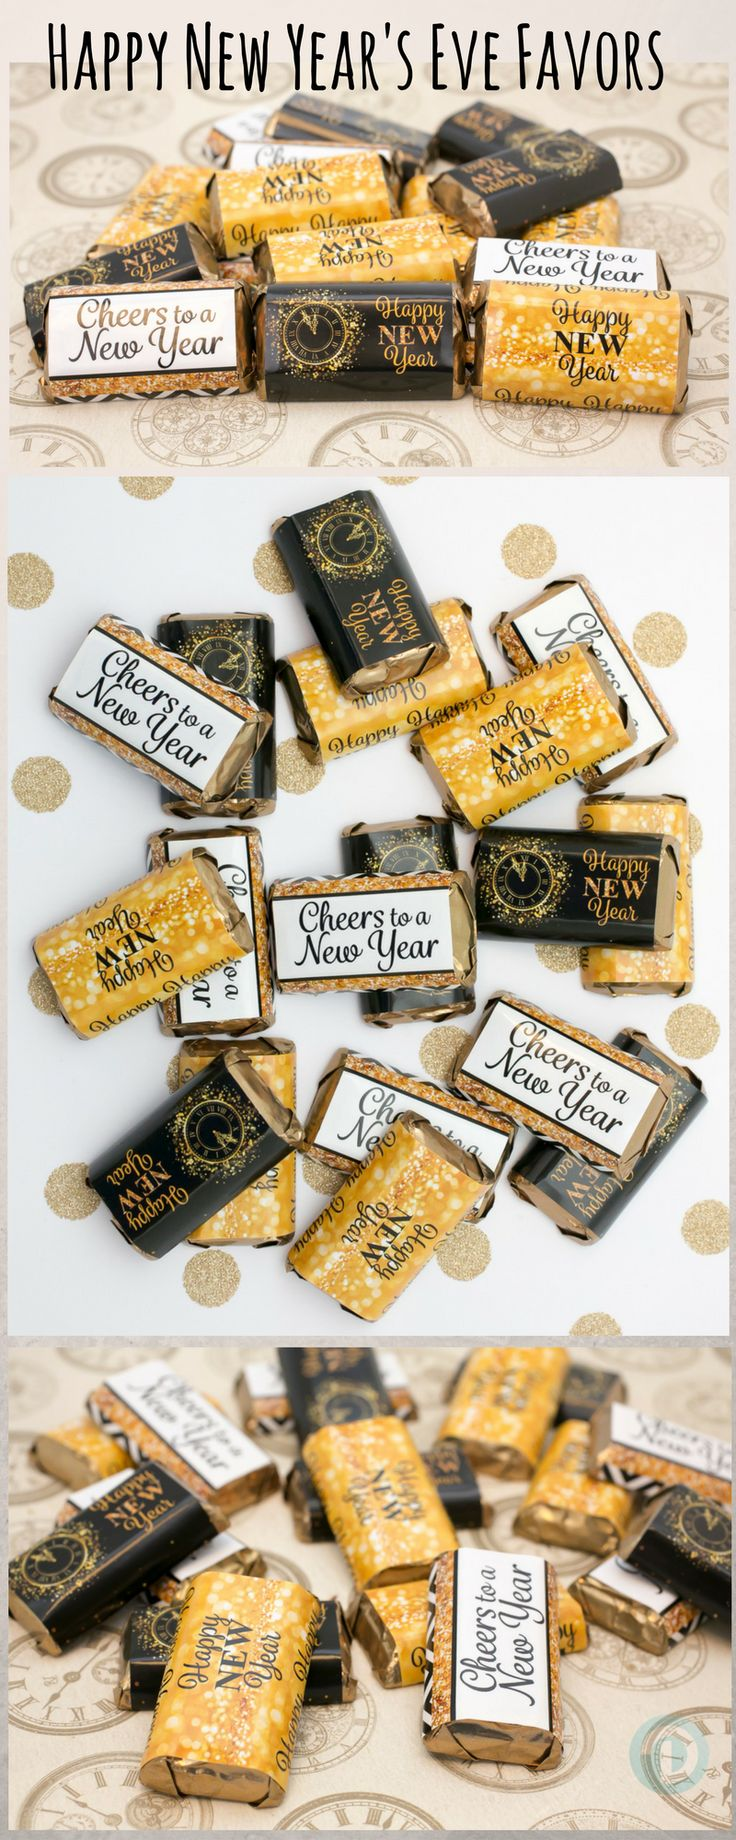 Simply peel, wrap and stick these New Years Eve Stickers around Hershey's Miniature Candy Bars to create a simple and easy New Year's Eve party favor!